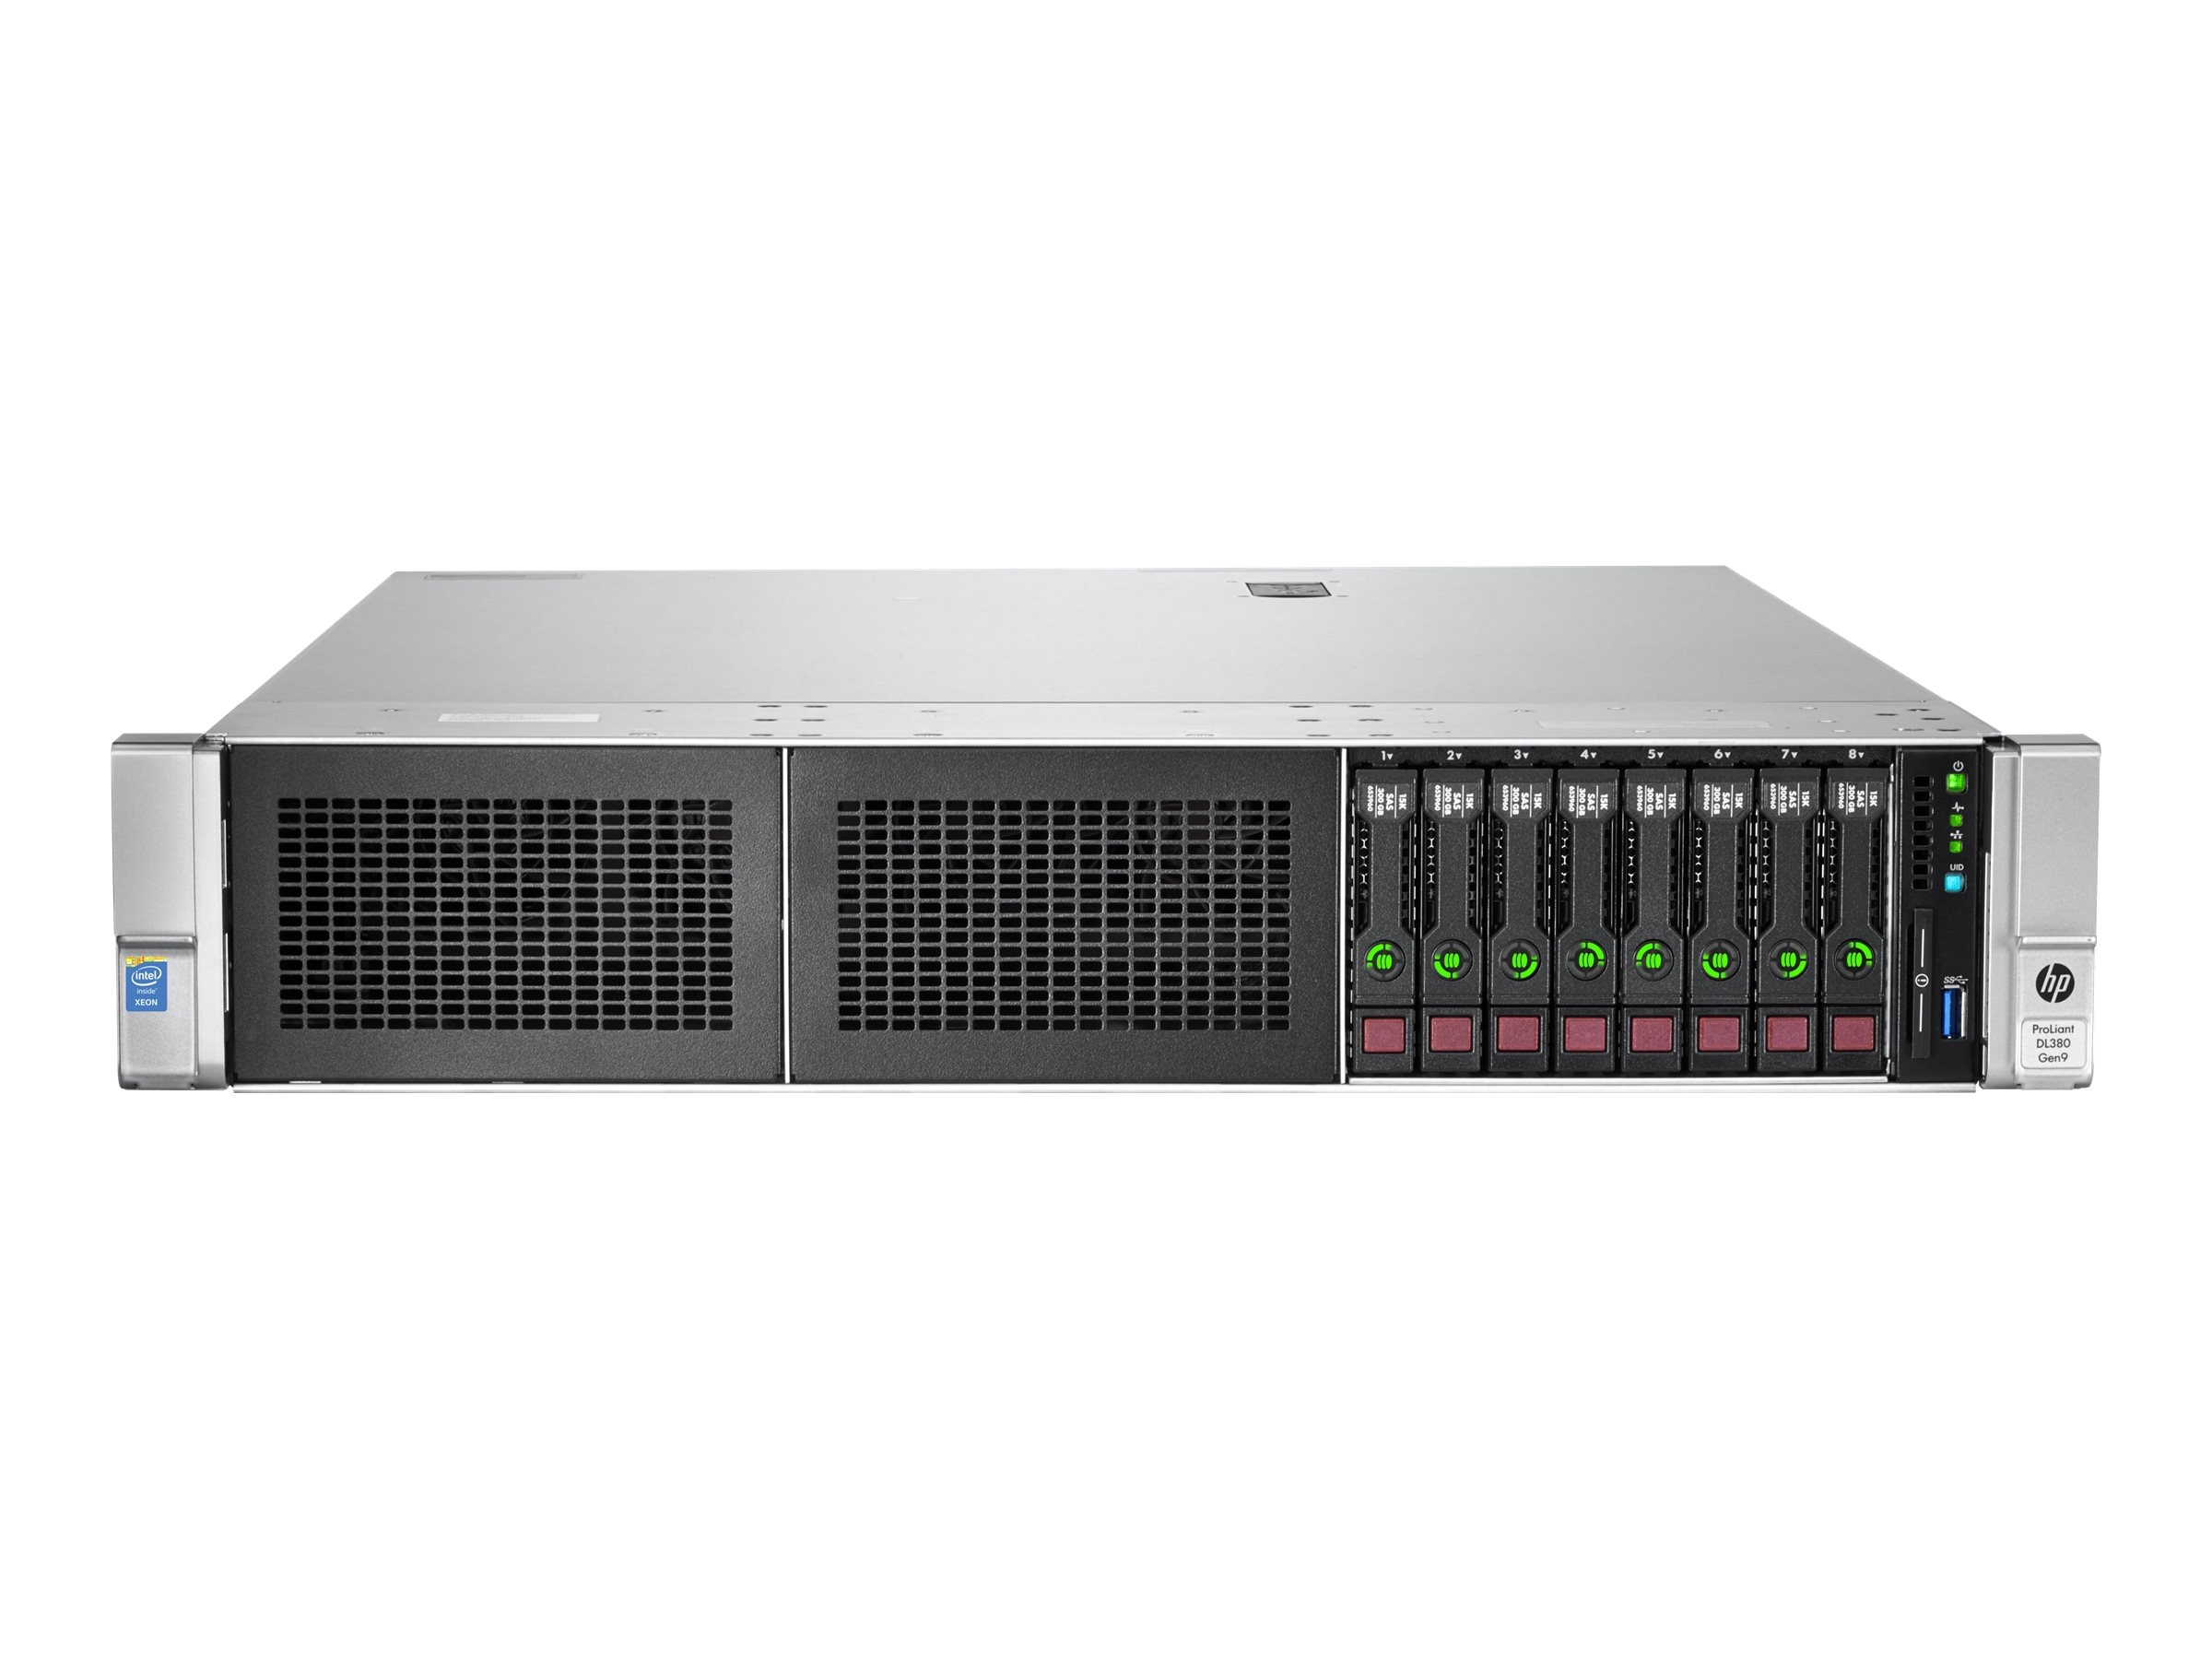 HPE ProLiant DL380 Gen9 Intel 2.2GHz Xeon